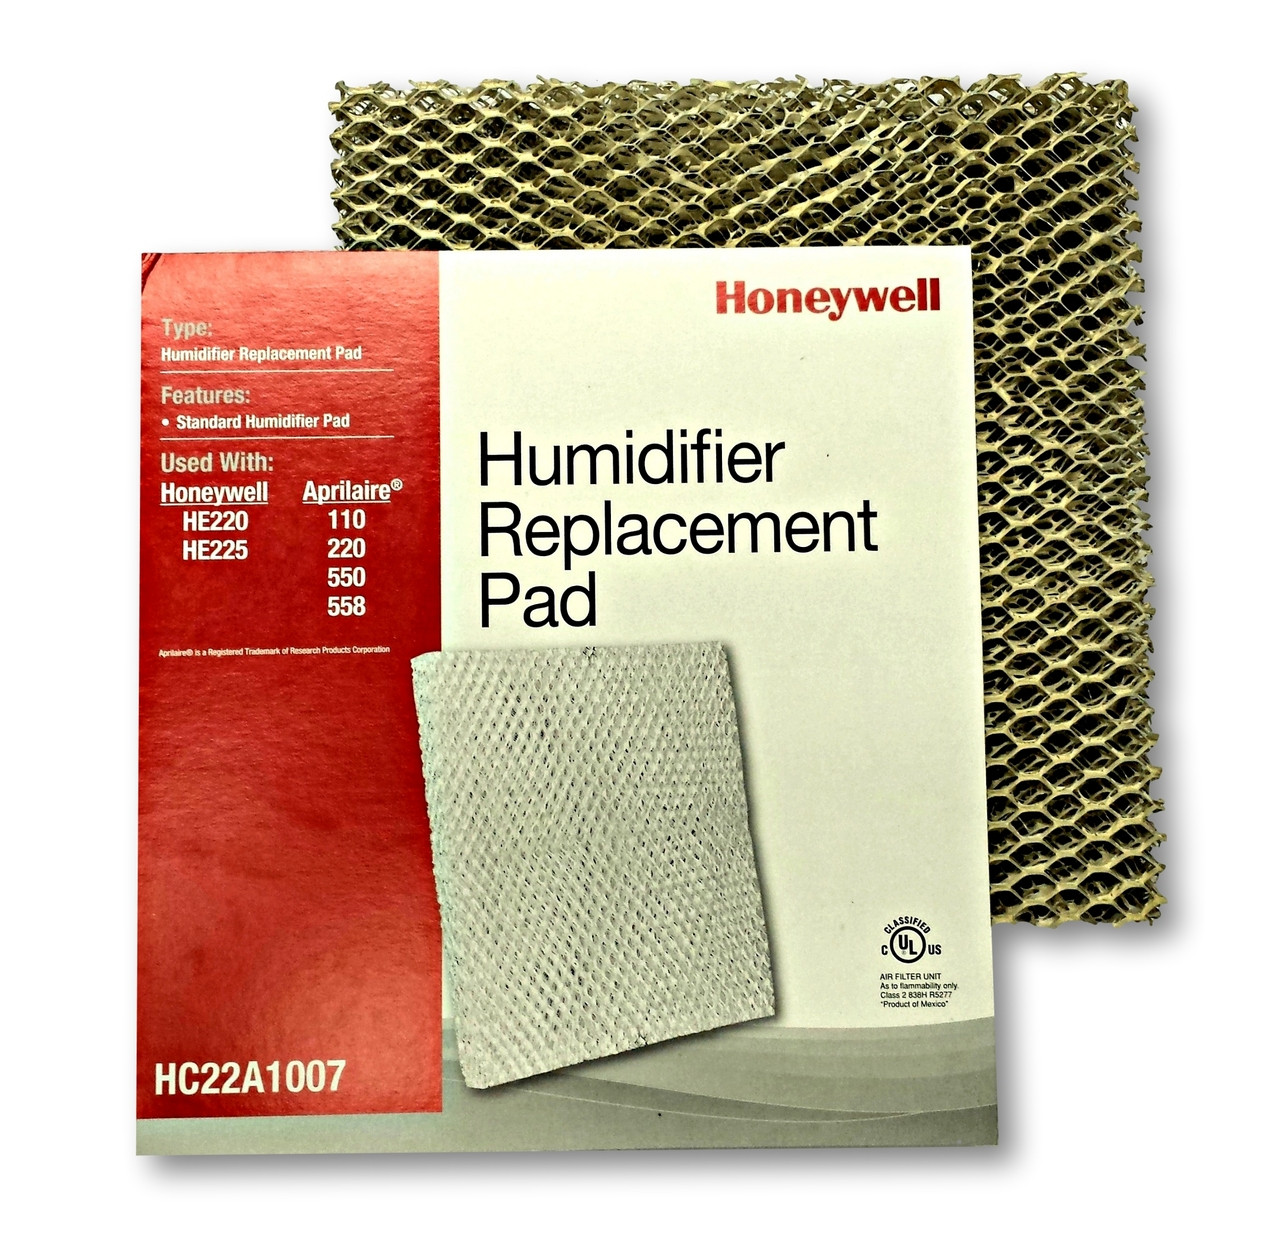 hight resolution of hc22a1007 humidifier pad he220 air quality honeywell store a honeywell he220a wiring diagram